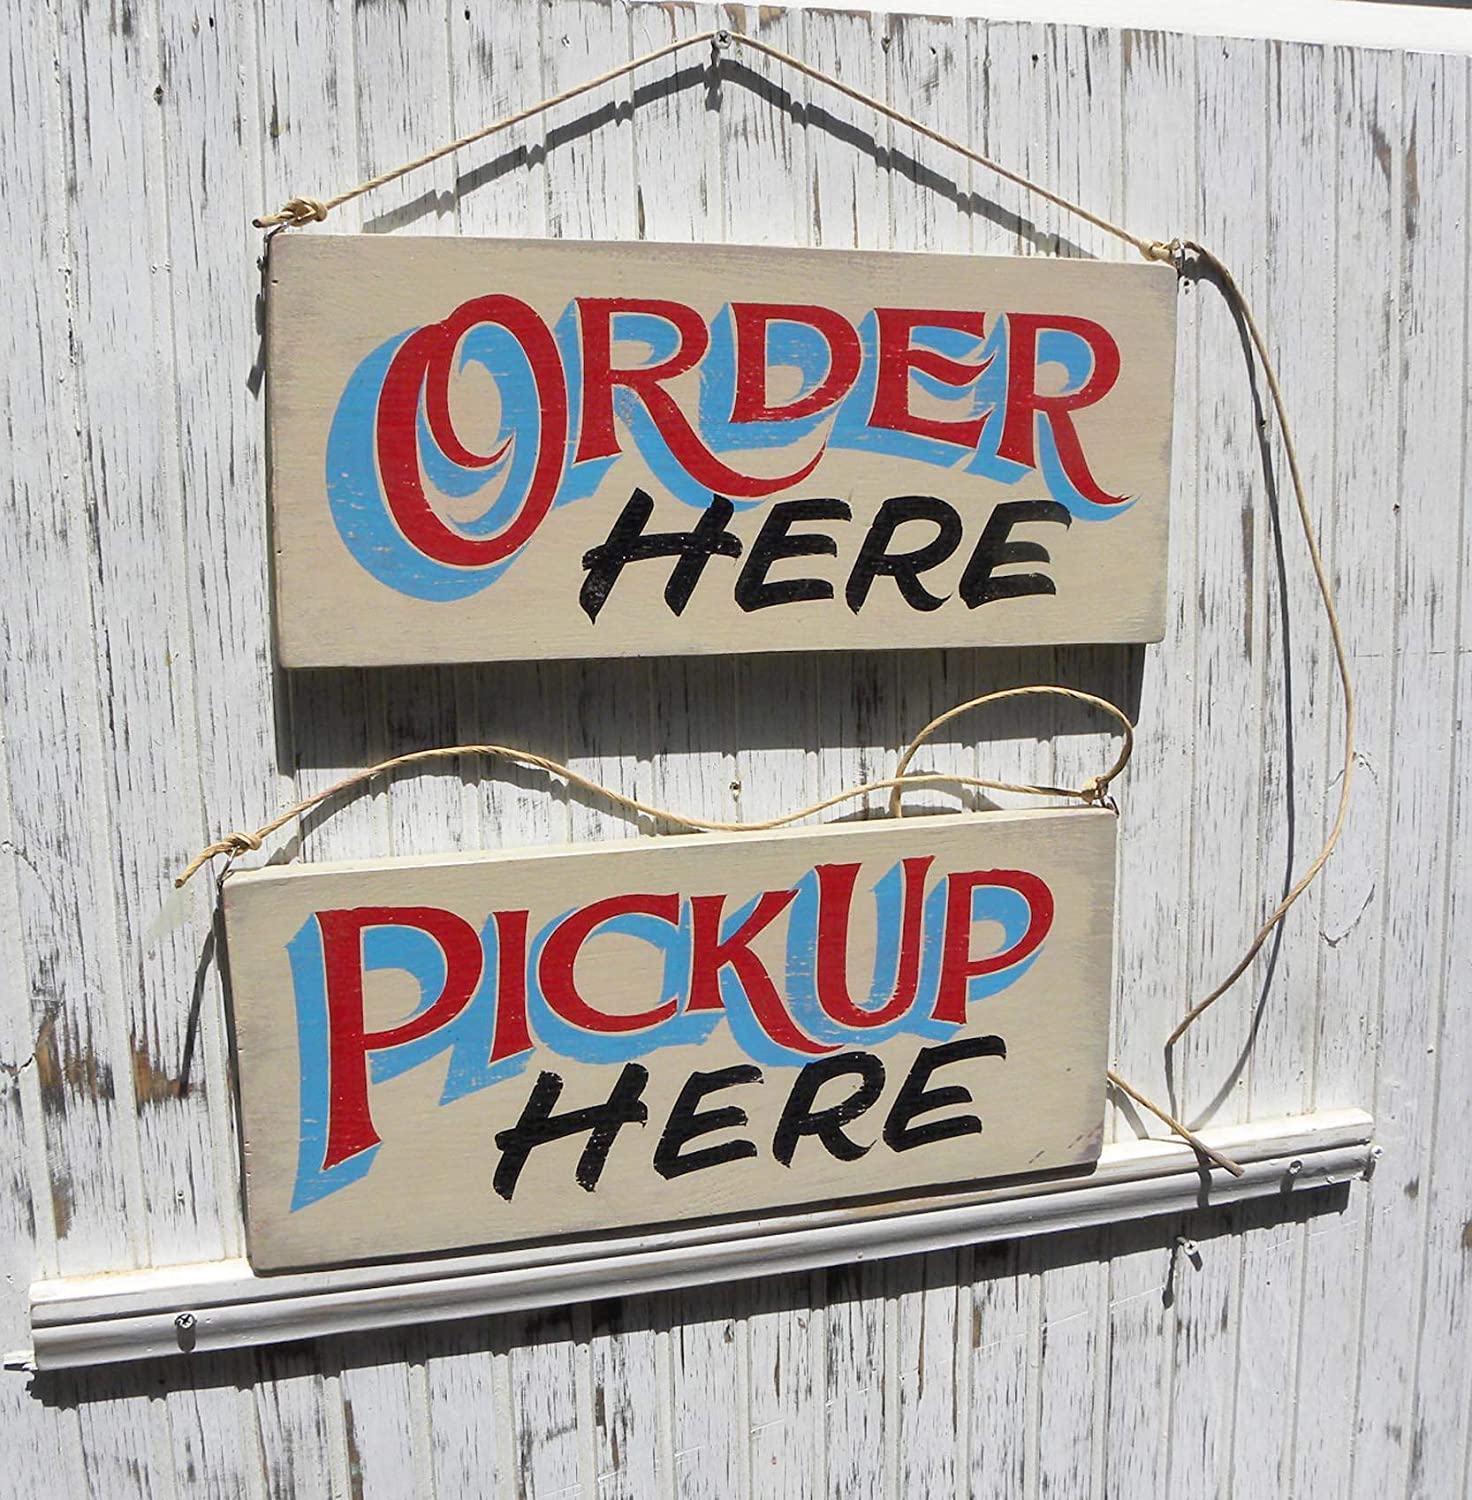 Blanche989 Order Here Pickup Here Signs Hand Painted Original Vintage Wooden Sign Directional Signs for Restaurant Food Truck Decor